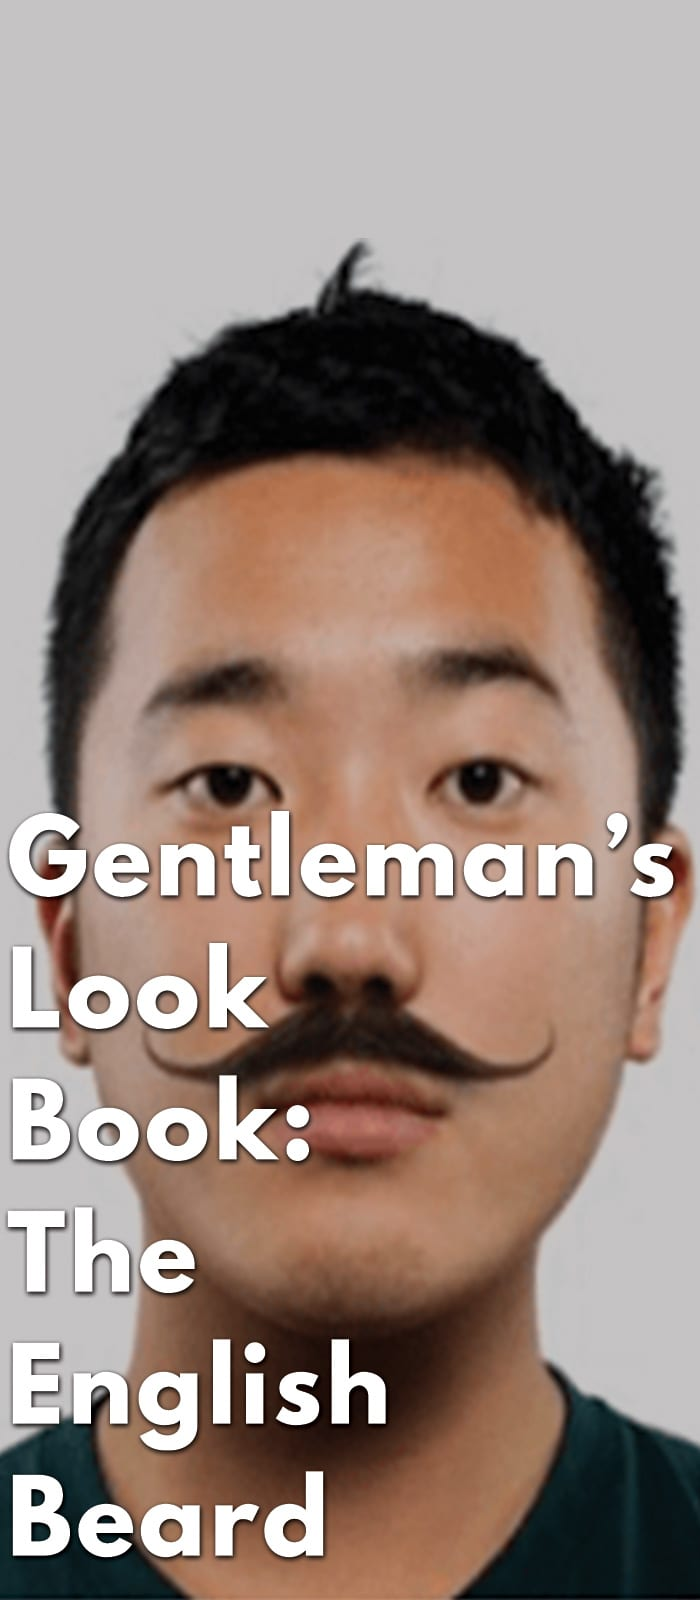 Gentleman's-Look-Book-The-English-Beard